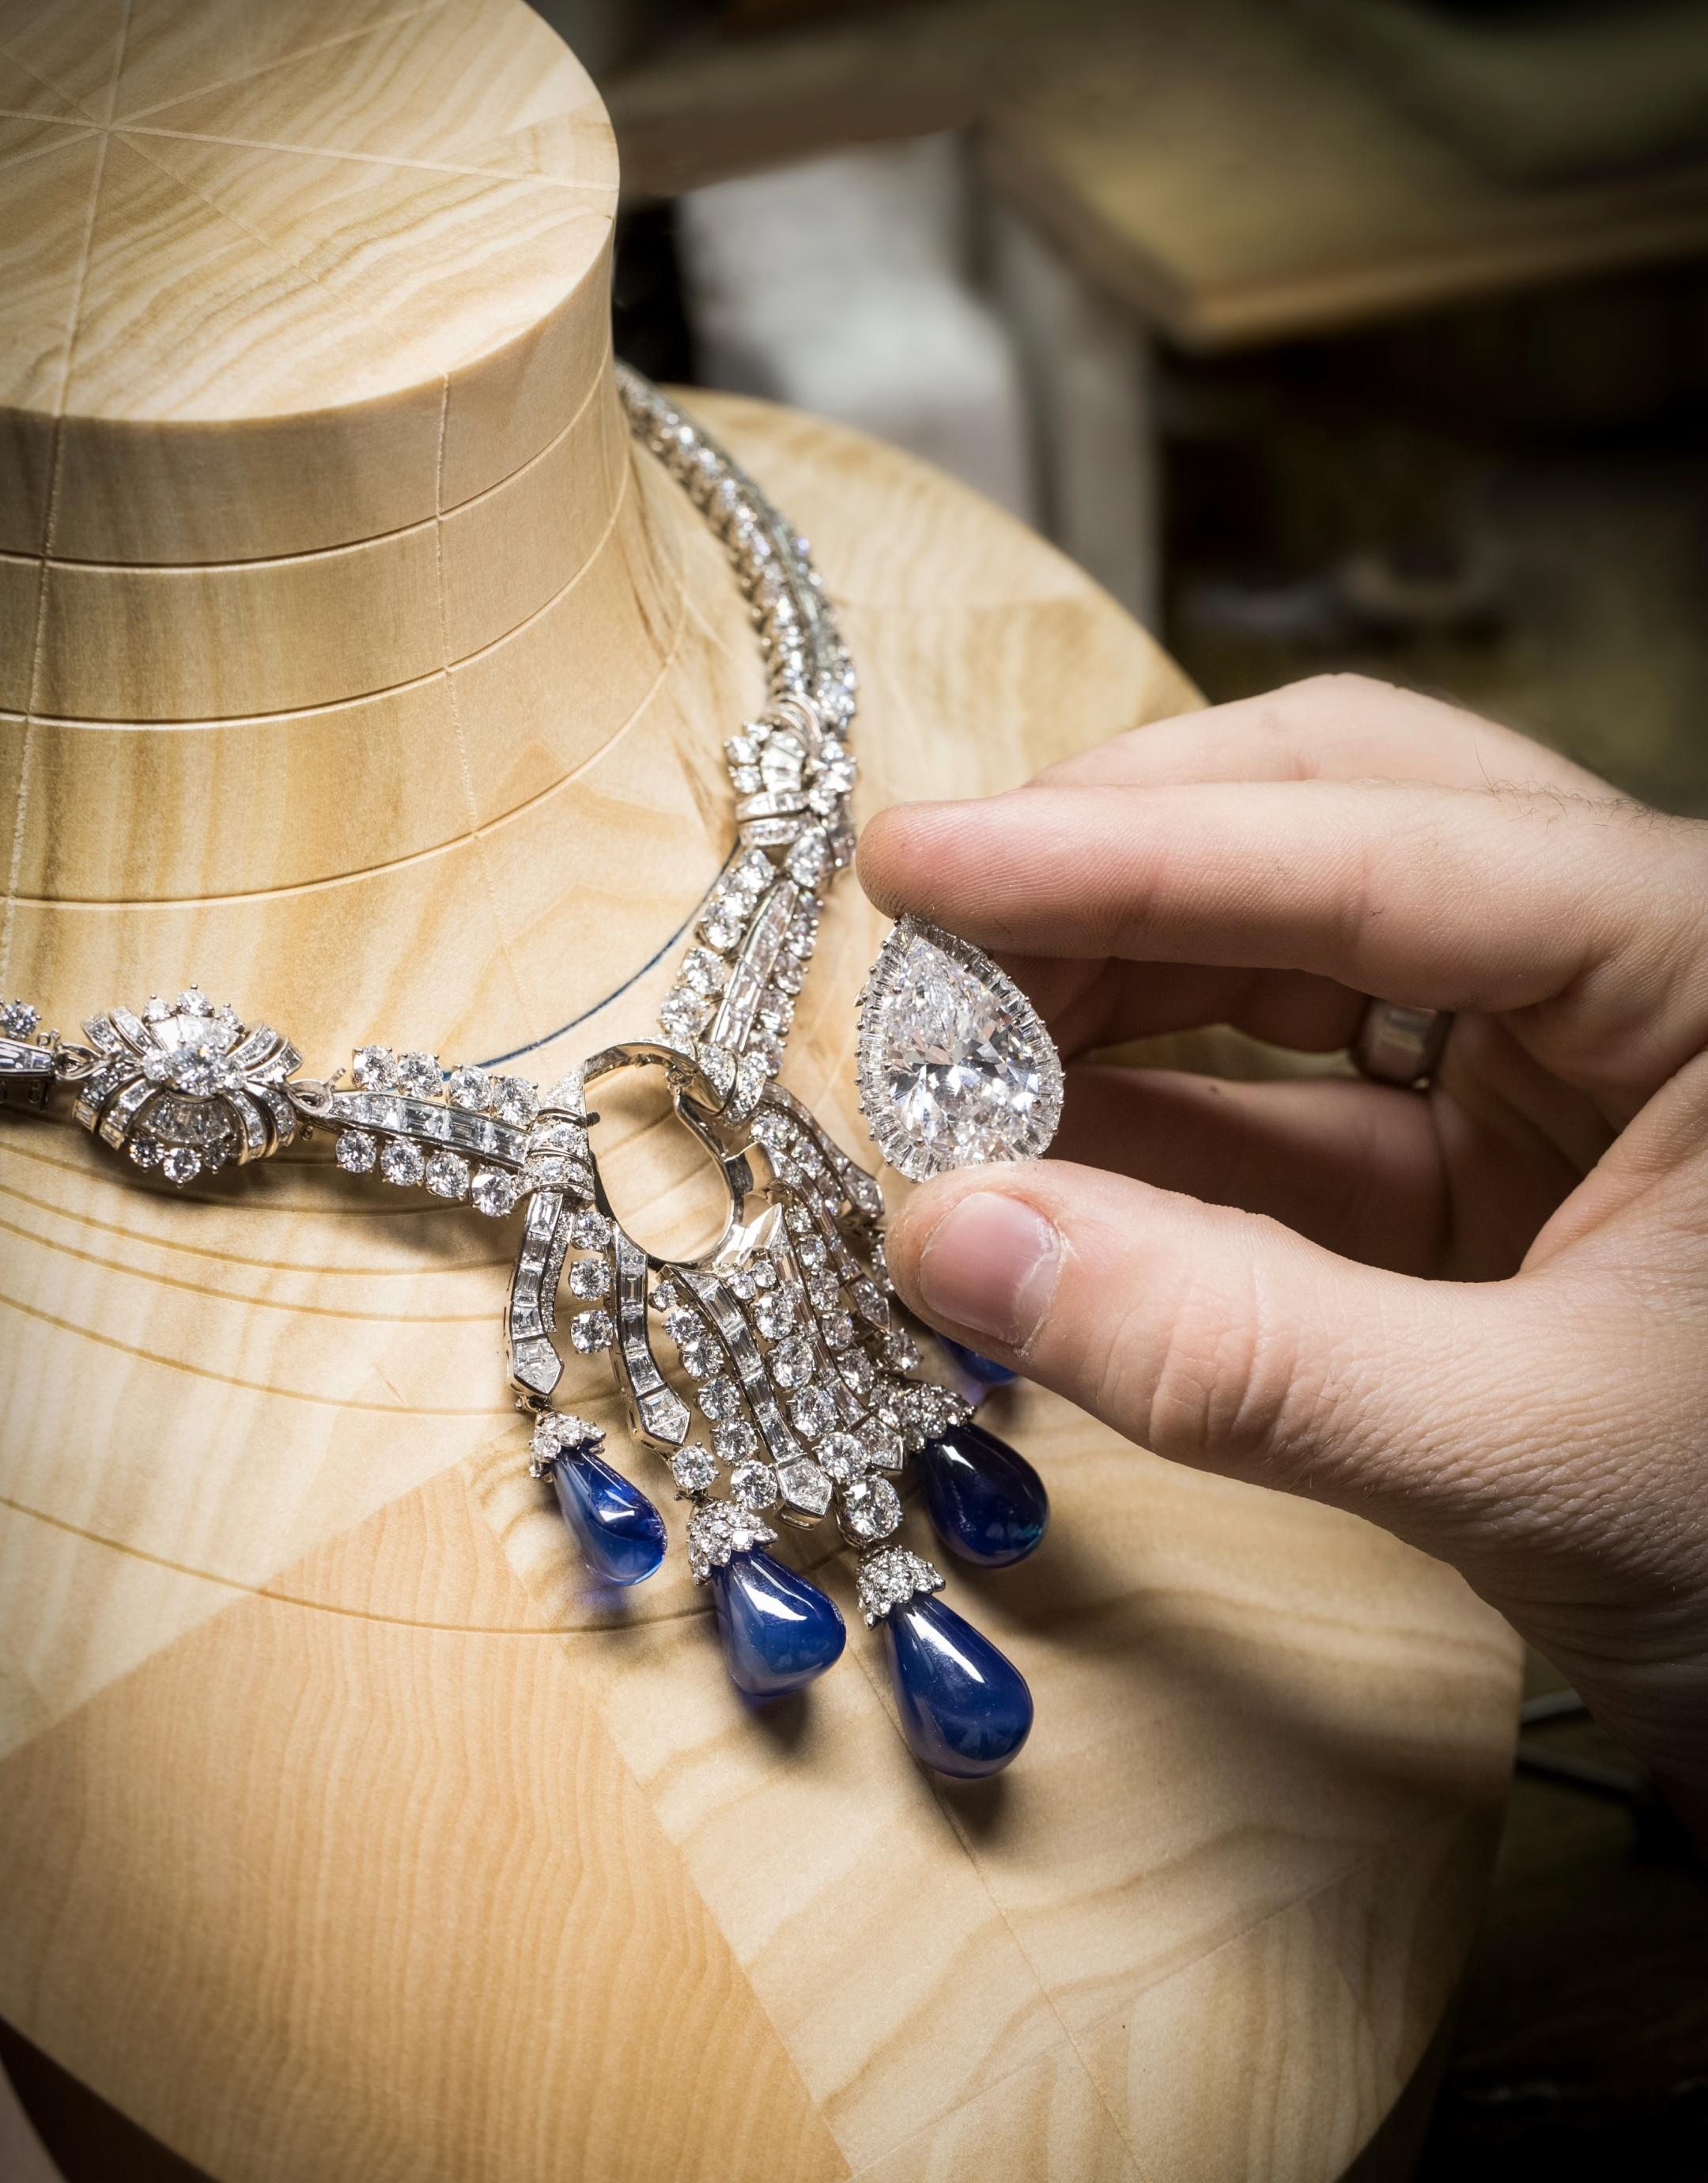 Checking of the fit between the central motif and the main necklace mounting, Bleu Absolu necklace.